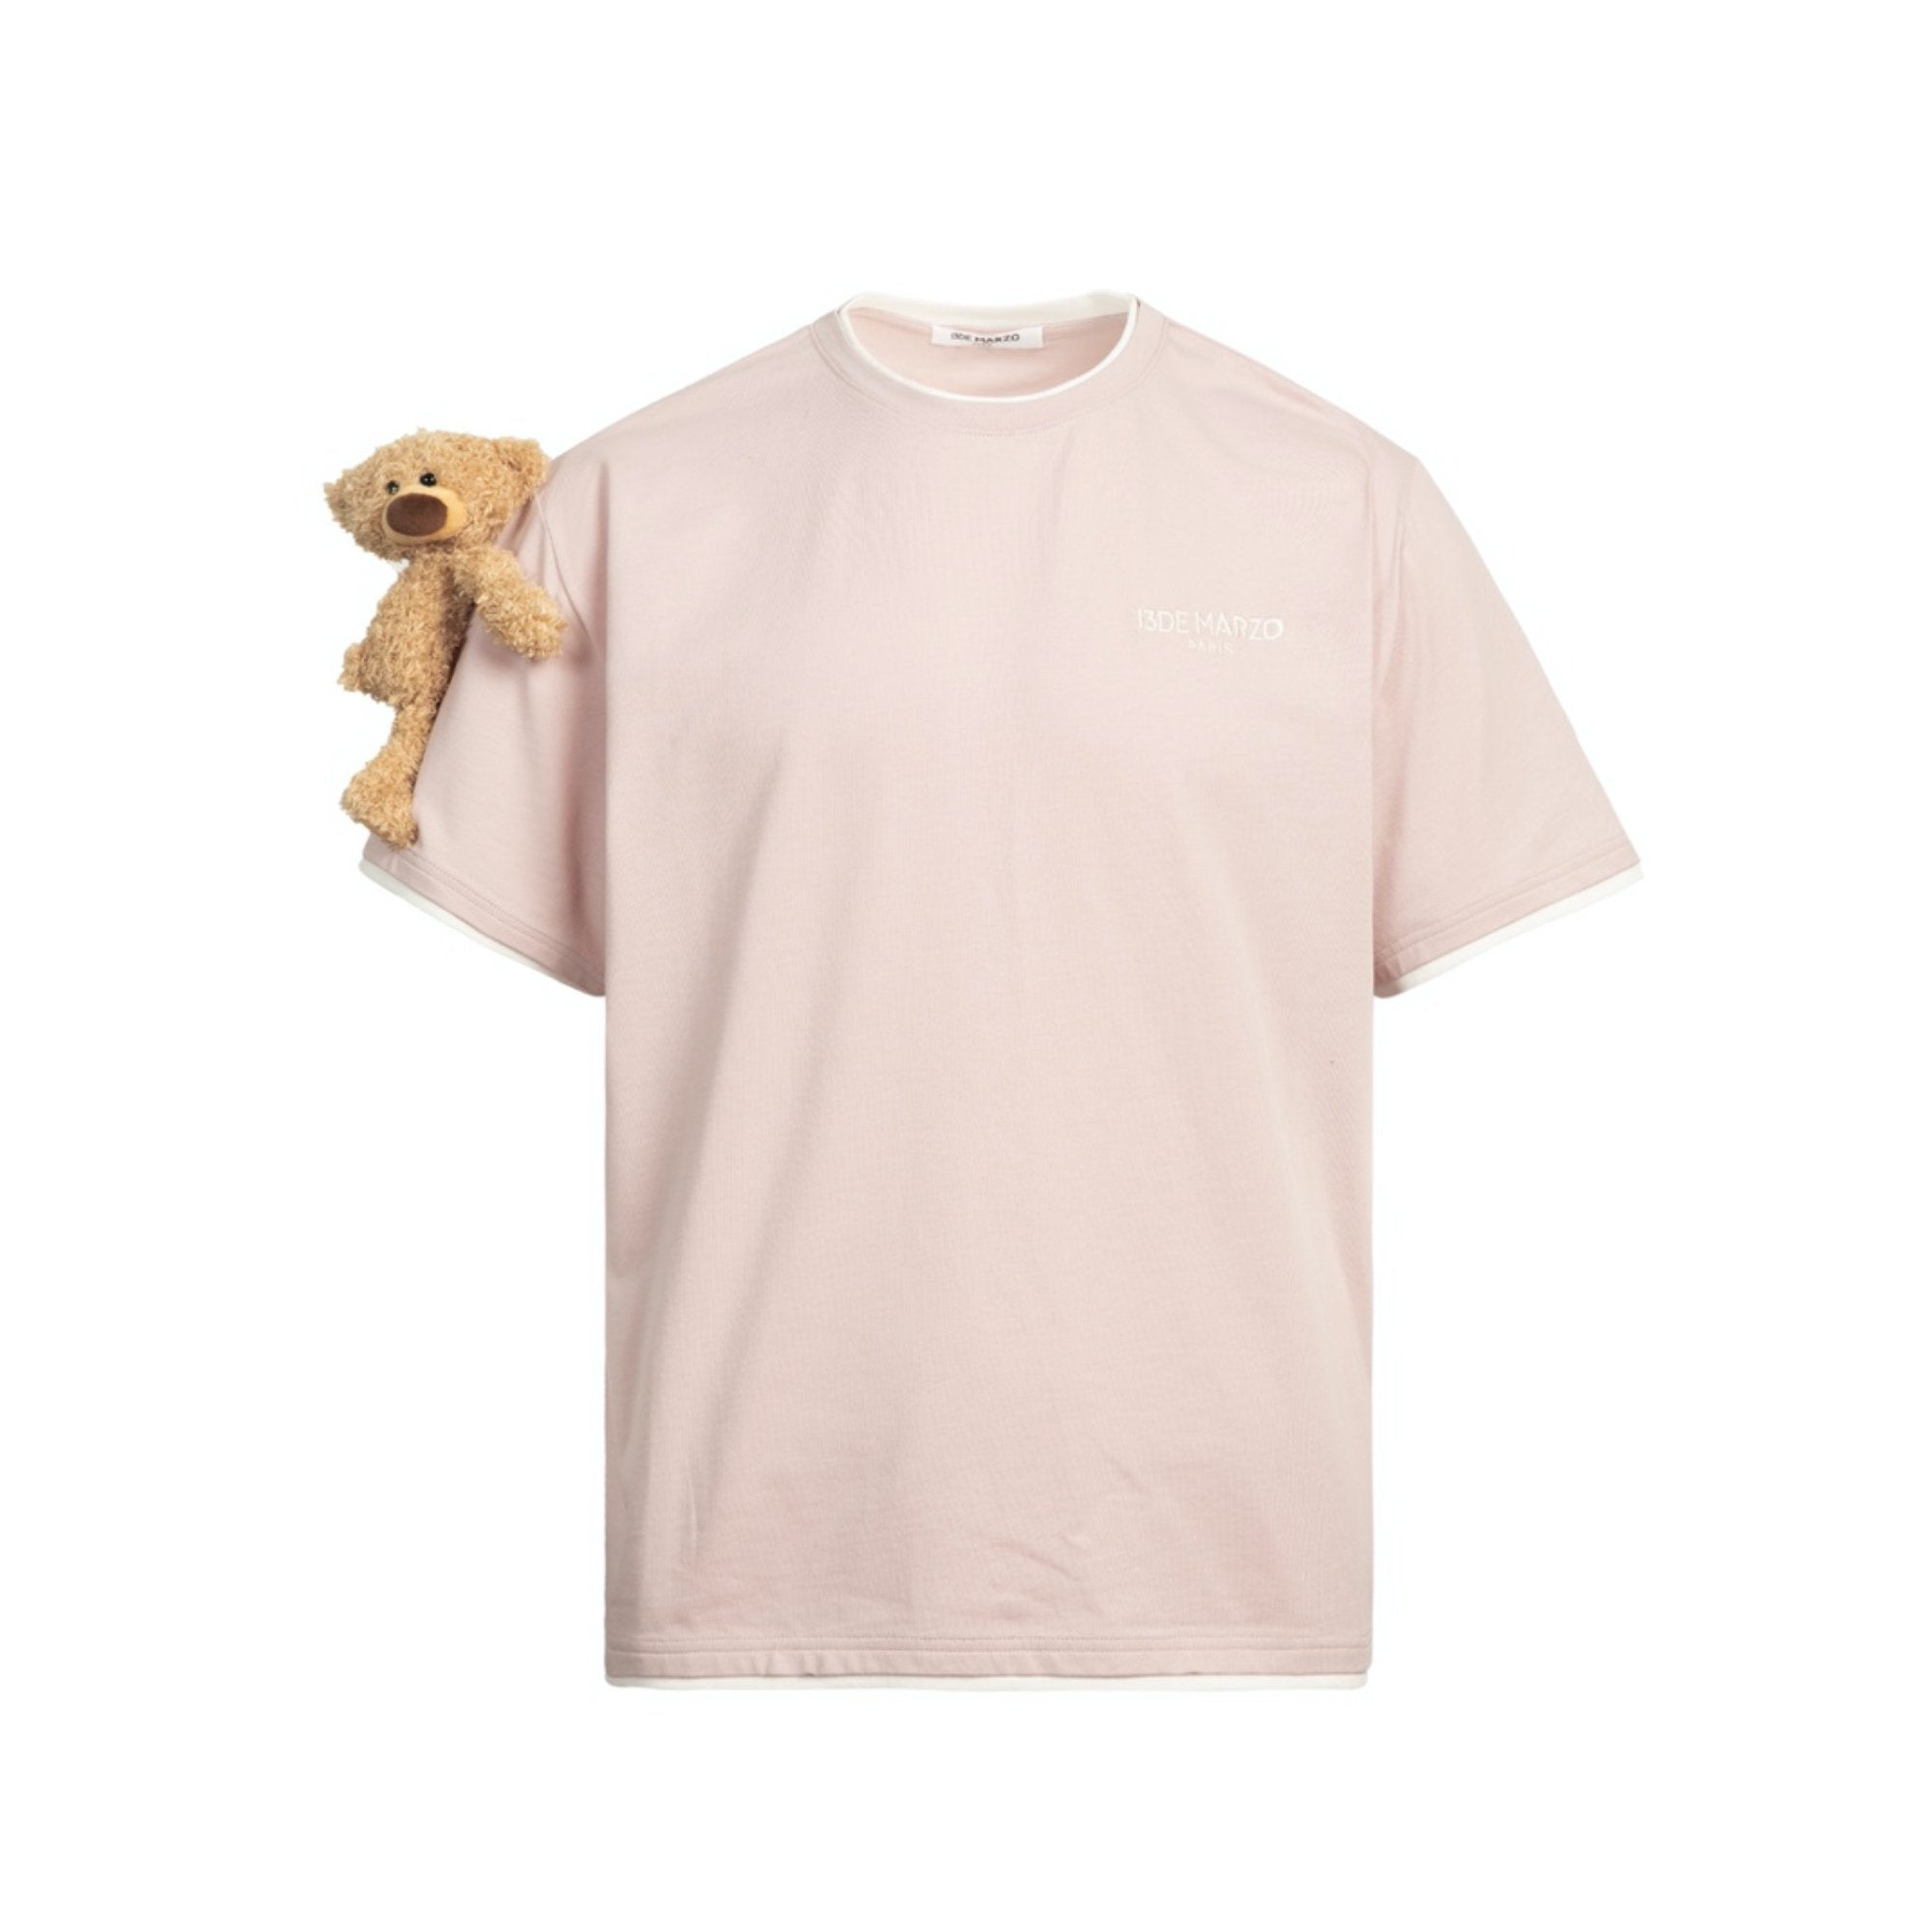 13 DE MARZO Short Sleeve Teddy Bear Tee Pearl | MADA IN CHINA